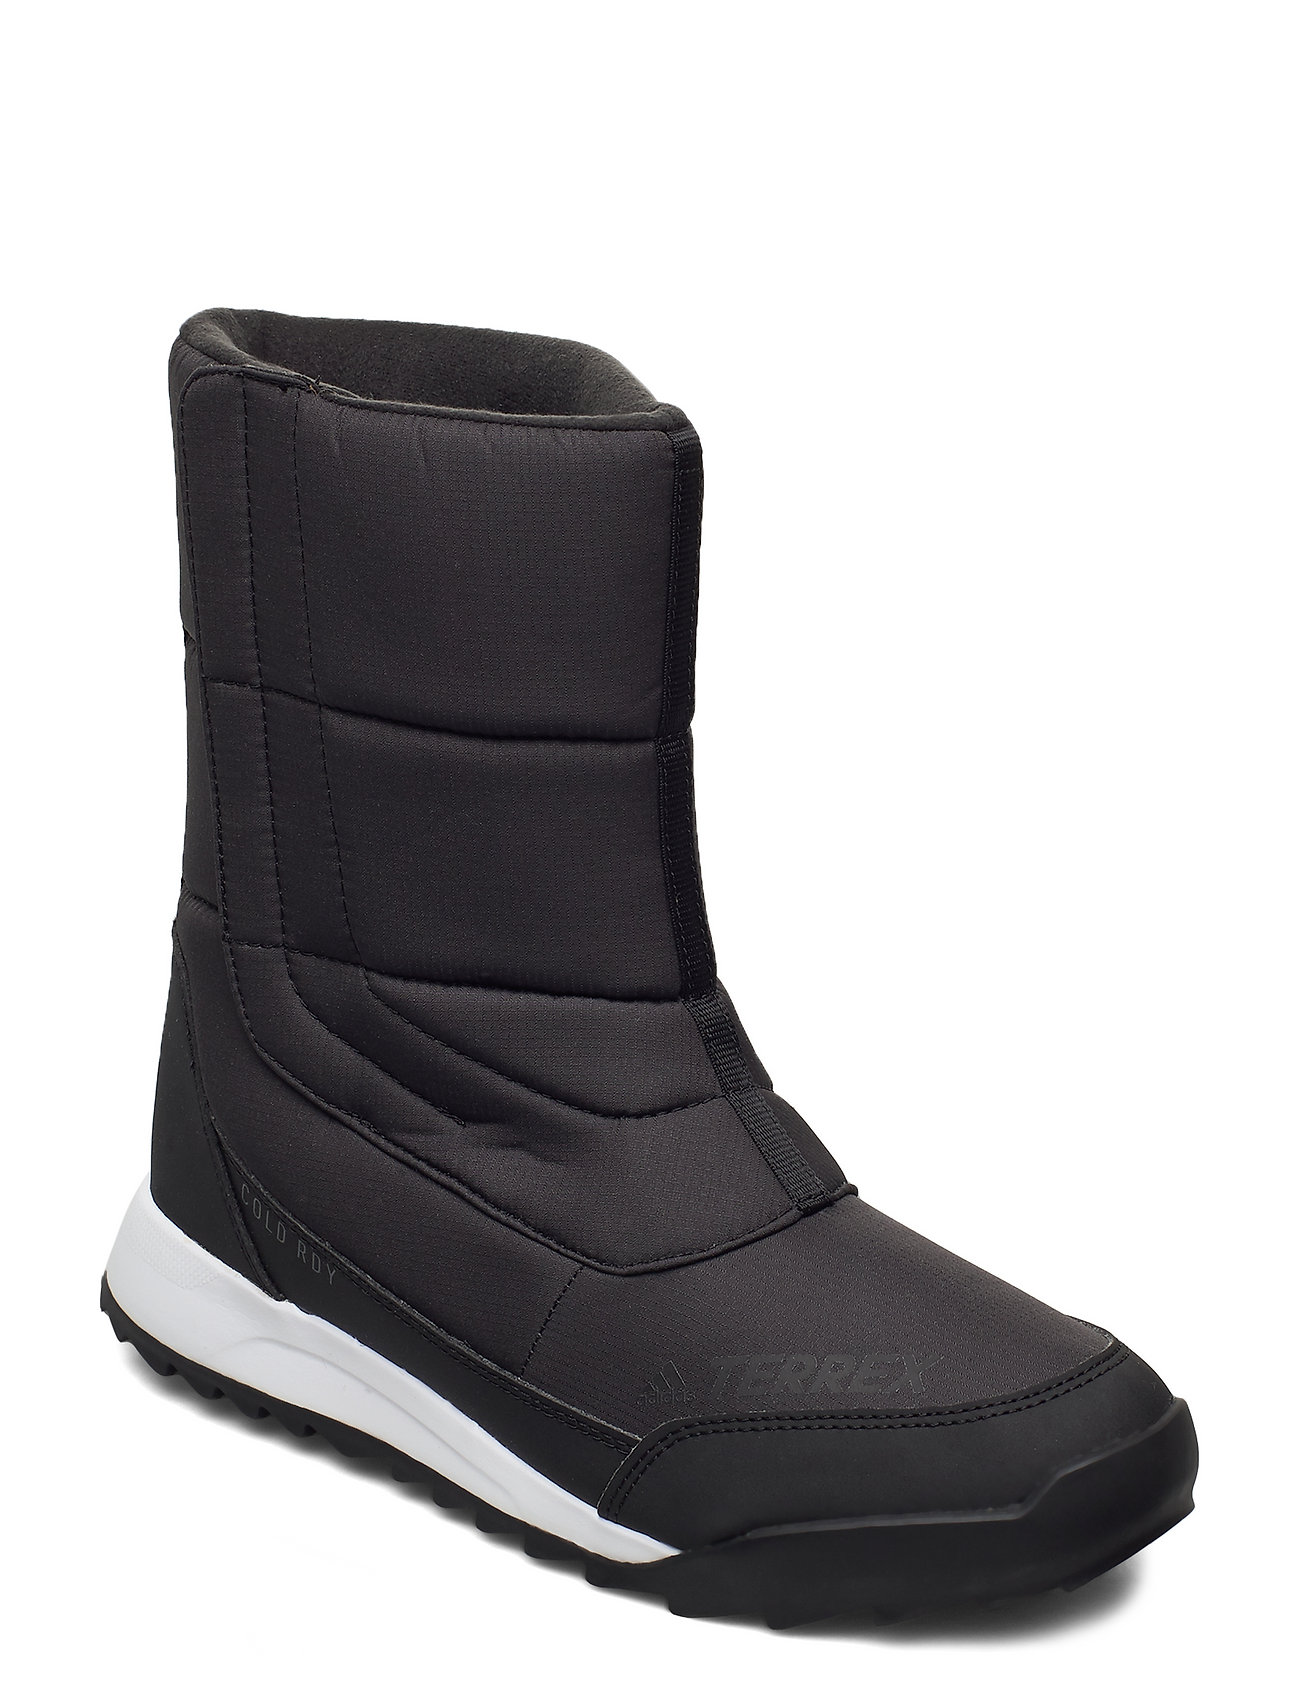 Image of Terrex Choleah Boot C.Rdy Shoes Boots Ankle Boots Ankle Boot - Flat Sort Adidas Performance (3454496849)